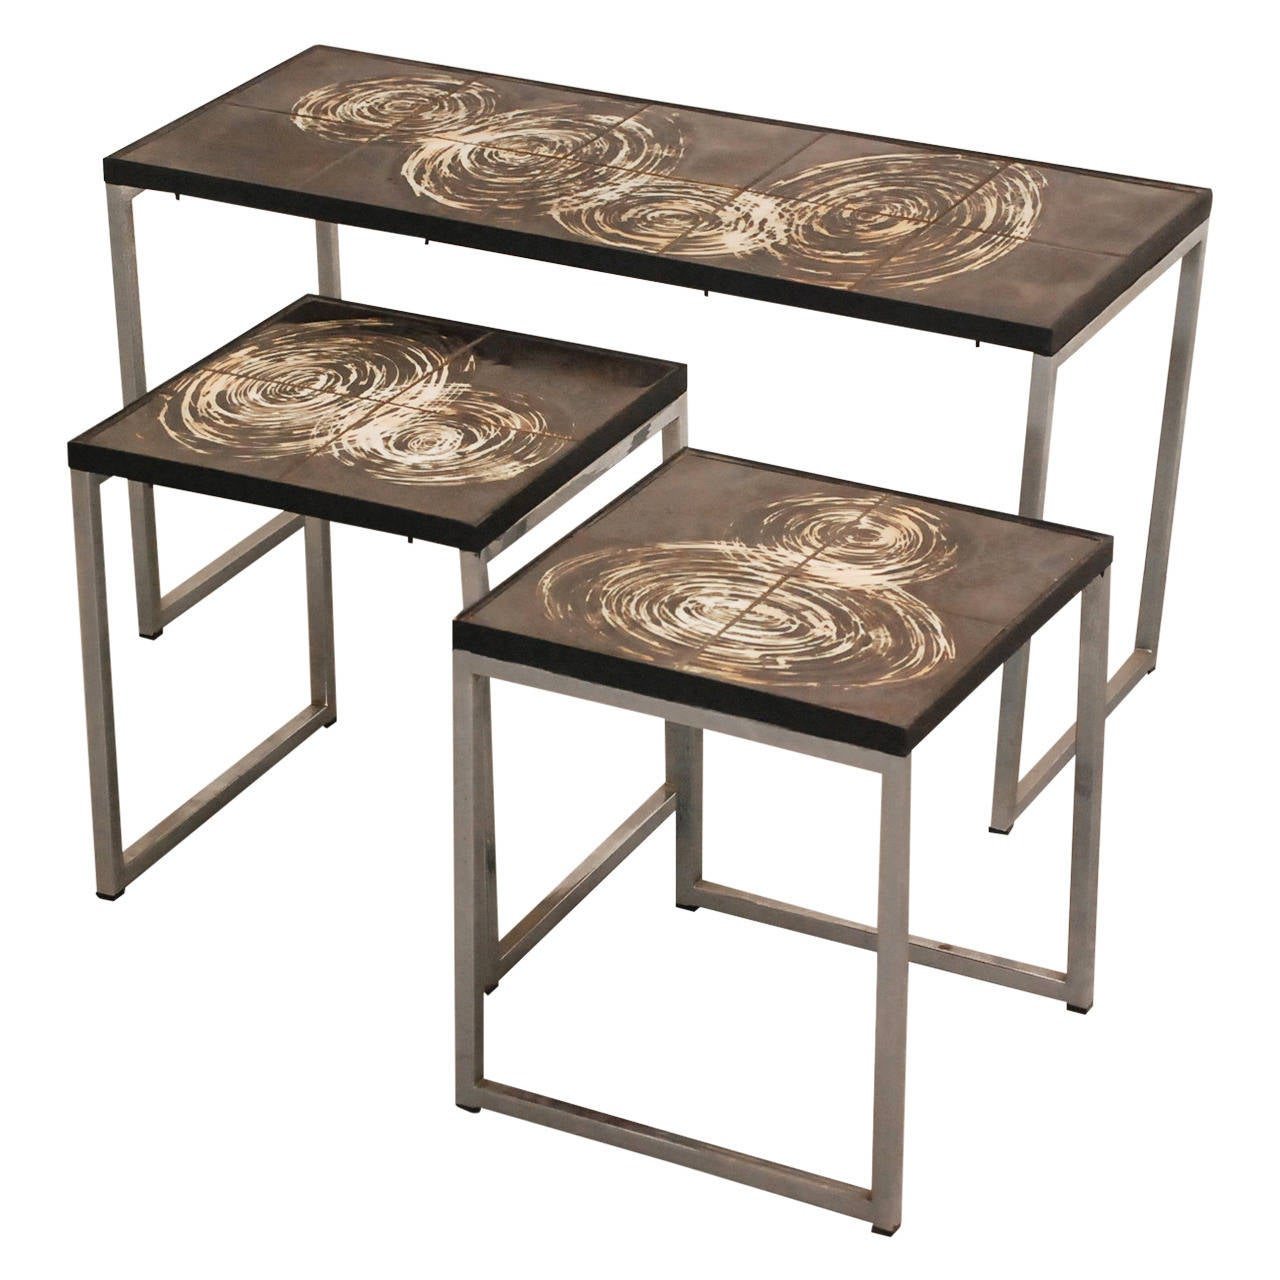 Belarti Coffee Table With Two Side Tables With Hand Painted Tiles At 1stdibs